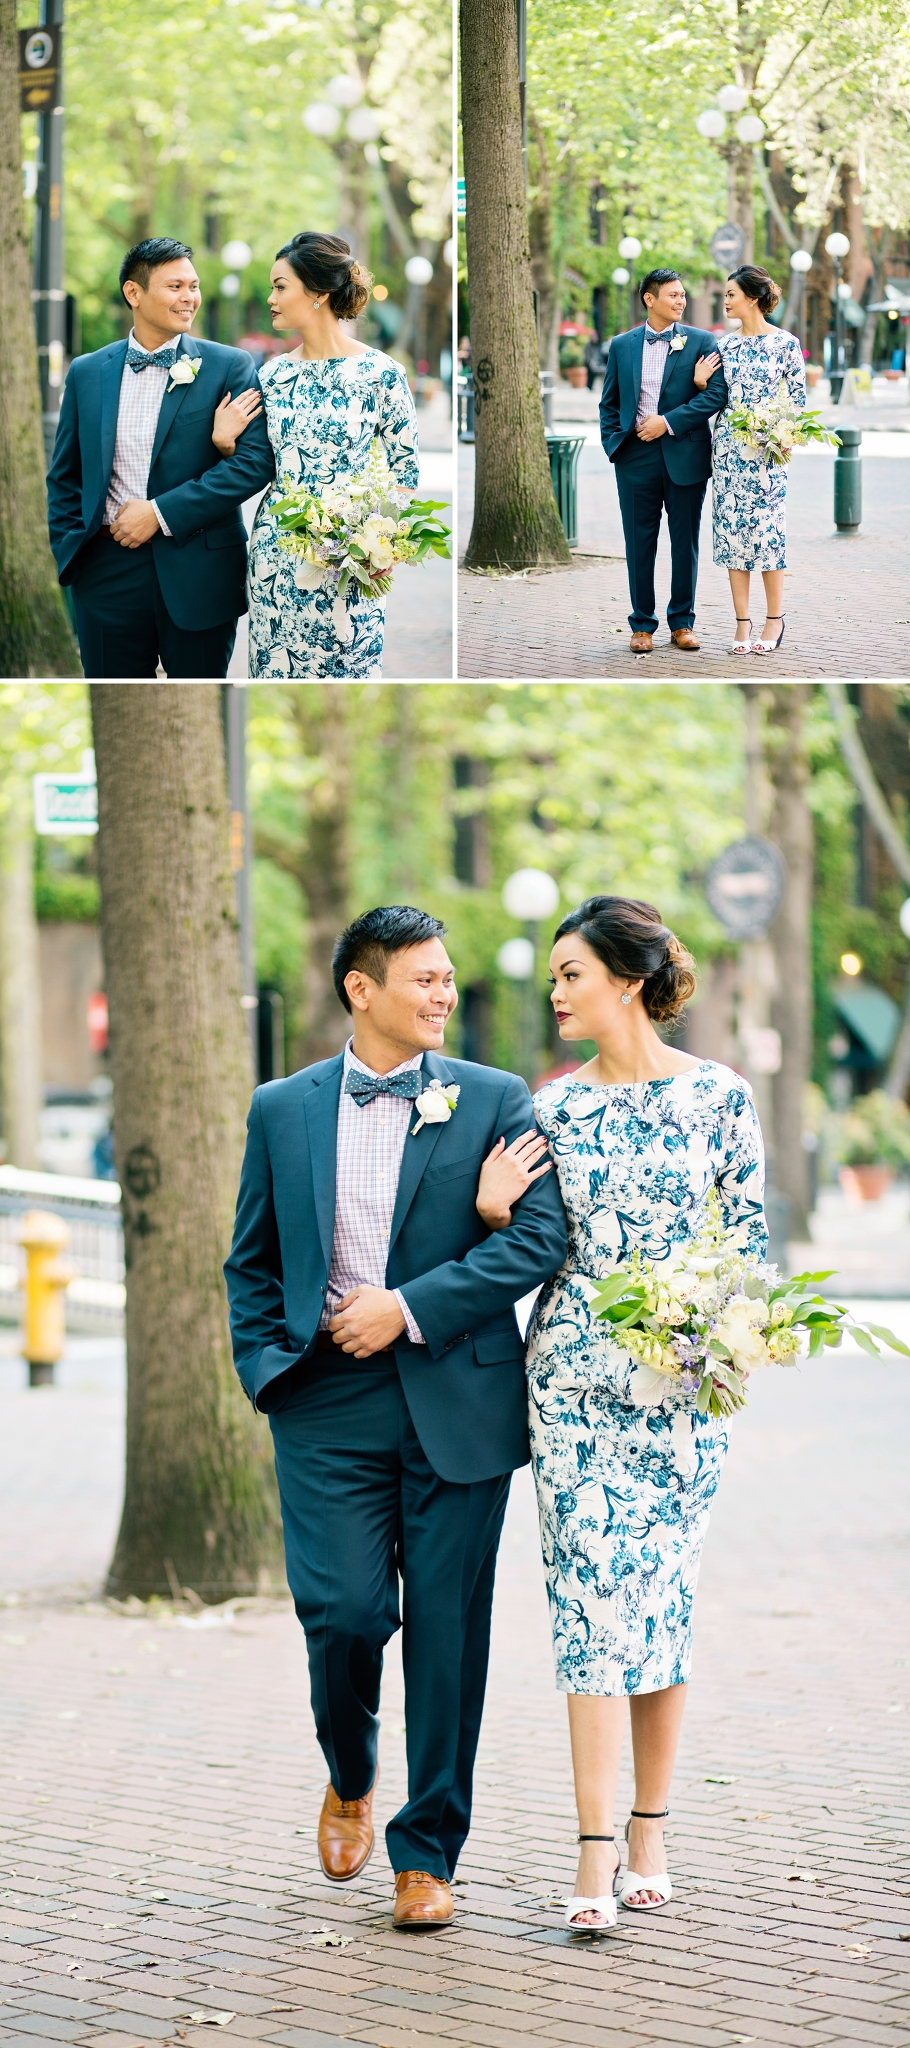 2-Bride-Groom-Candid-Portraits-Occidental-Park-Pioneer-Square-Seattle-Wedding-Day-Photographer-Photography-by-Betty-Elaine